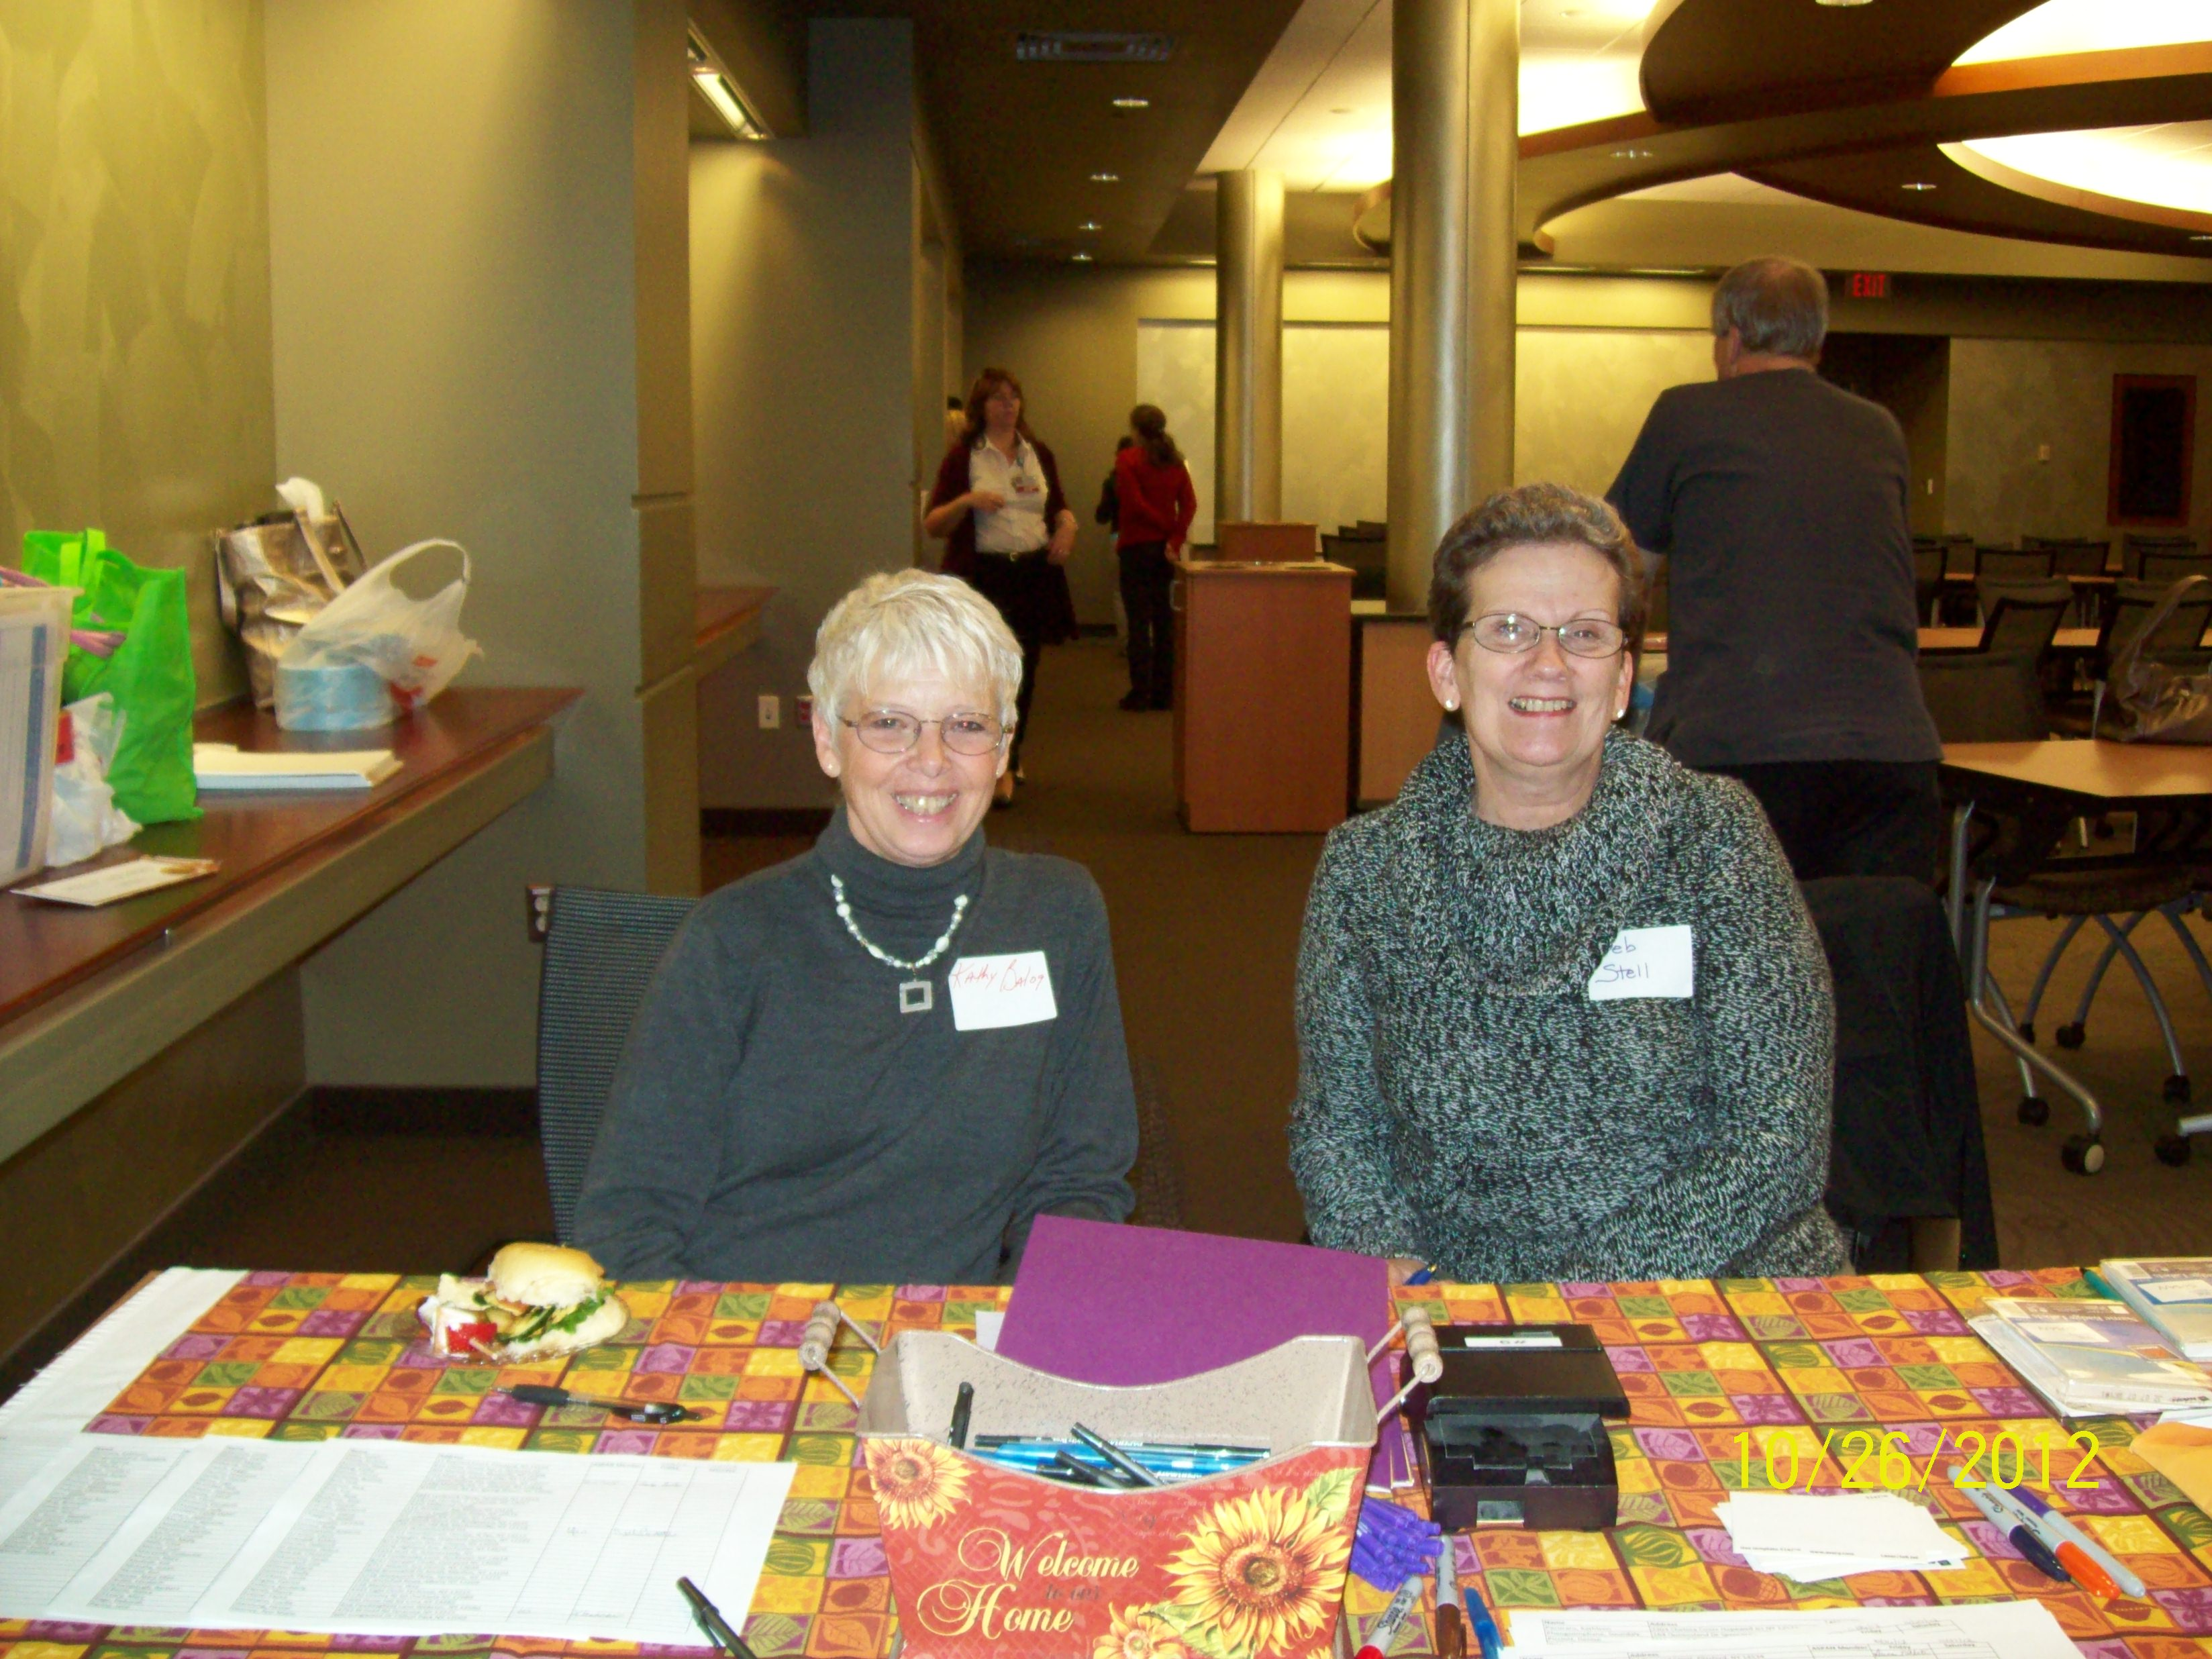 kathy-bolog-syracuse-state-conference-2012